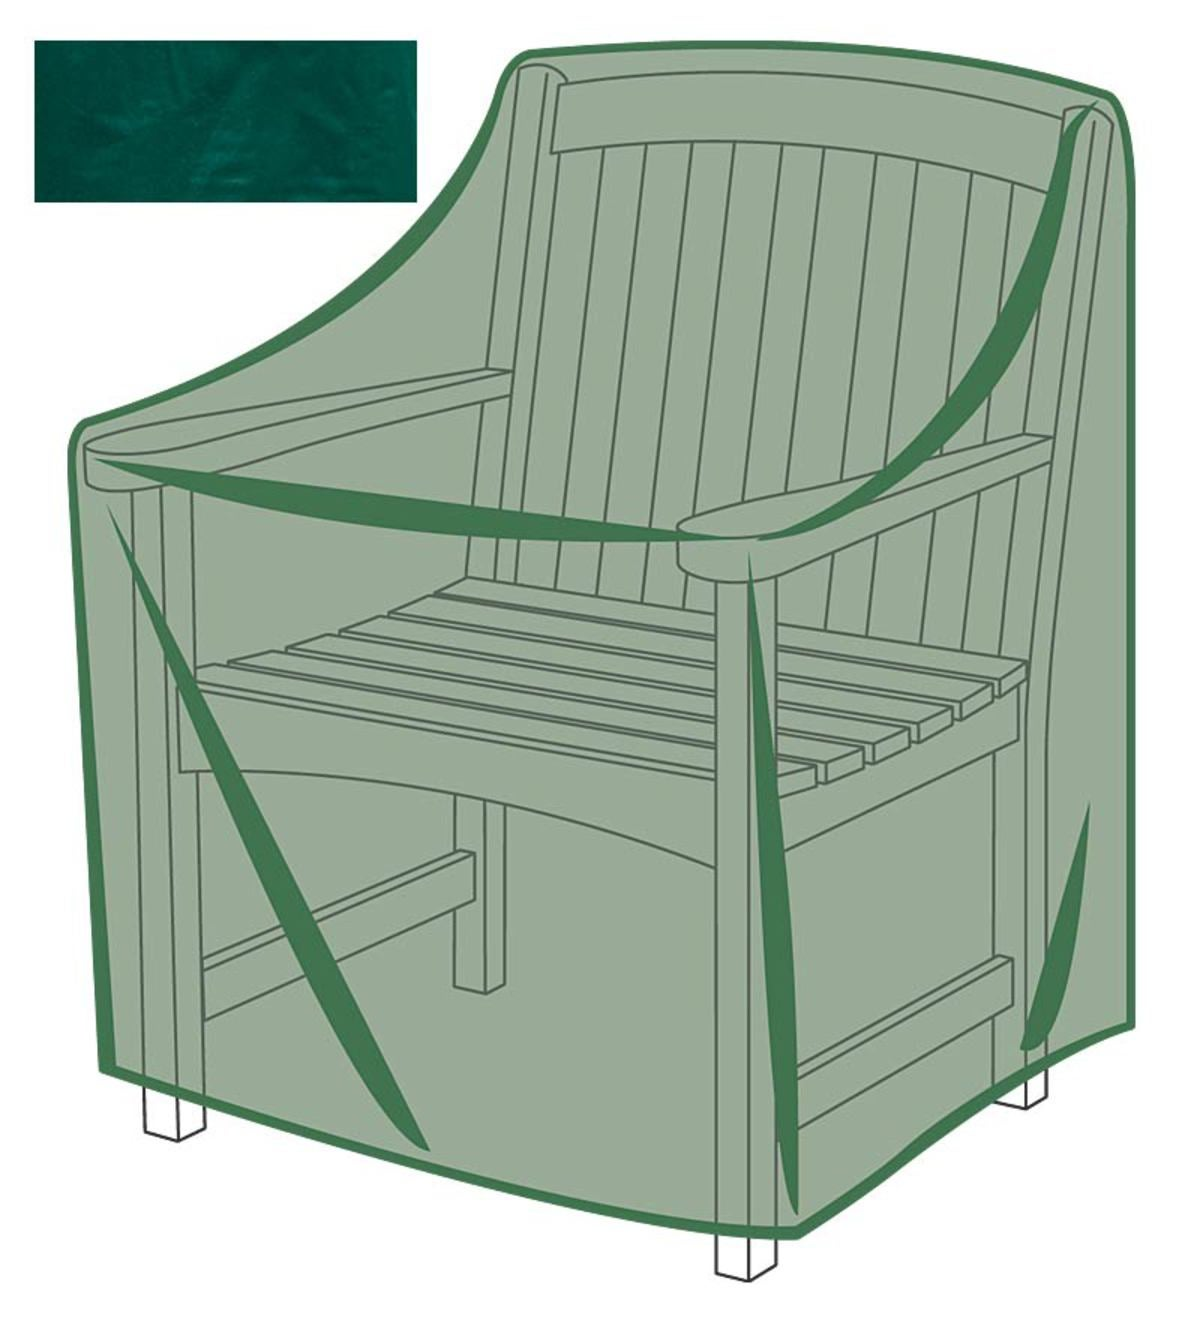 Outdoor Furniture All-Weather Cover for Armchair - Green